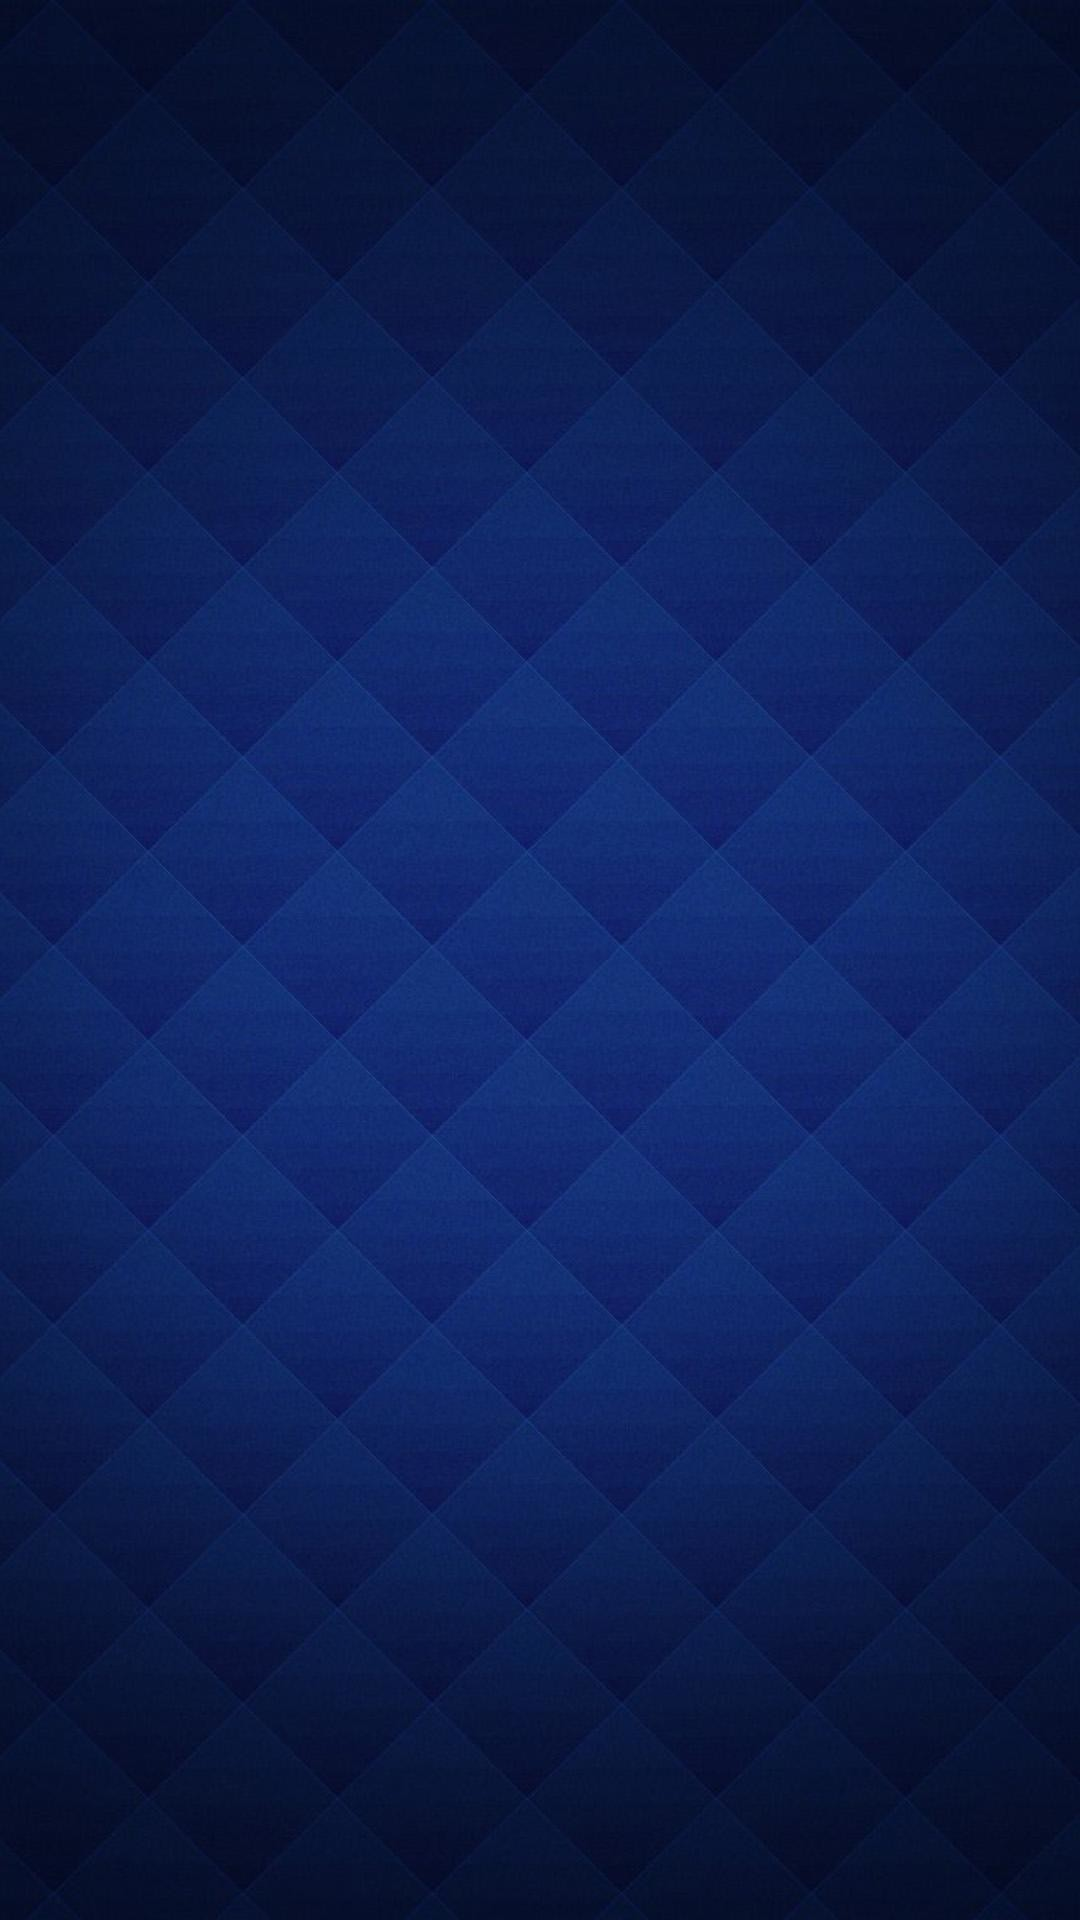 wallpaper.wiki-HD-Free-Blue-iPhone-Pictures-PIC-